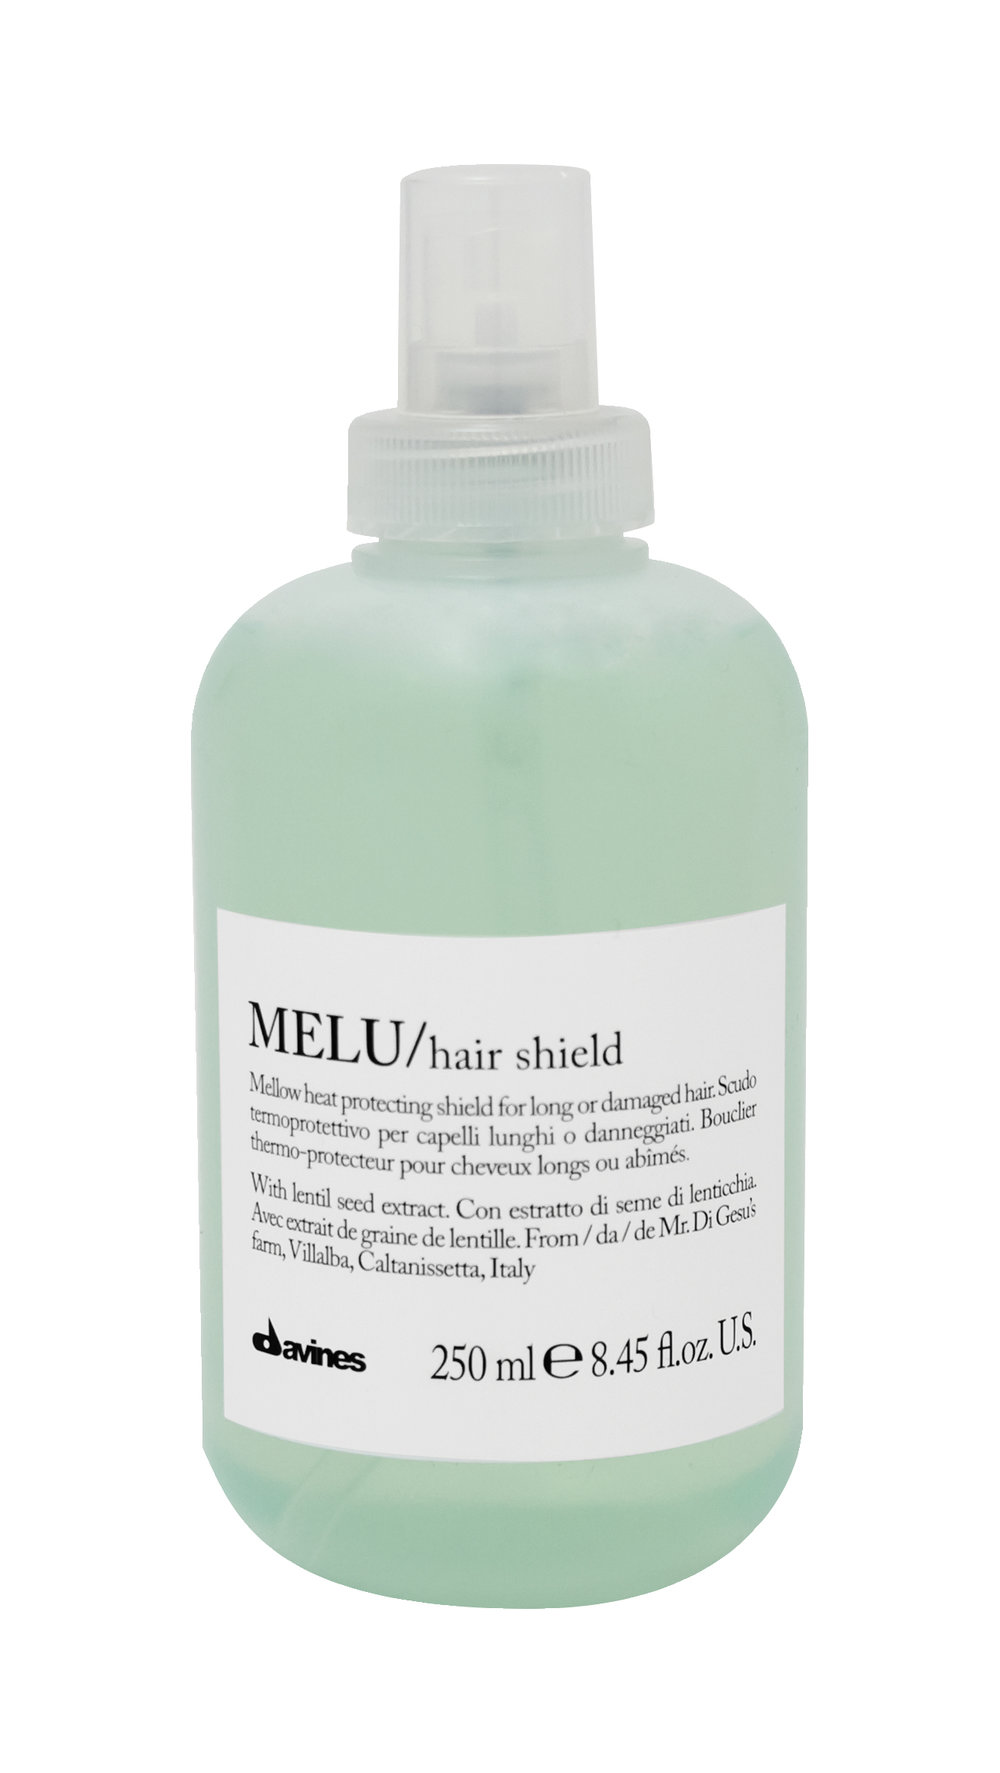 Heat Shield - Works up to 450* on wet or dry hair. Perfect for all heat tools.